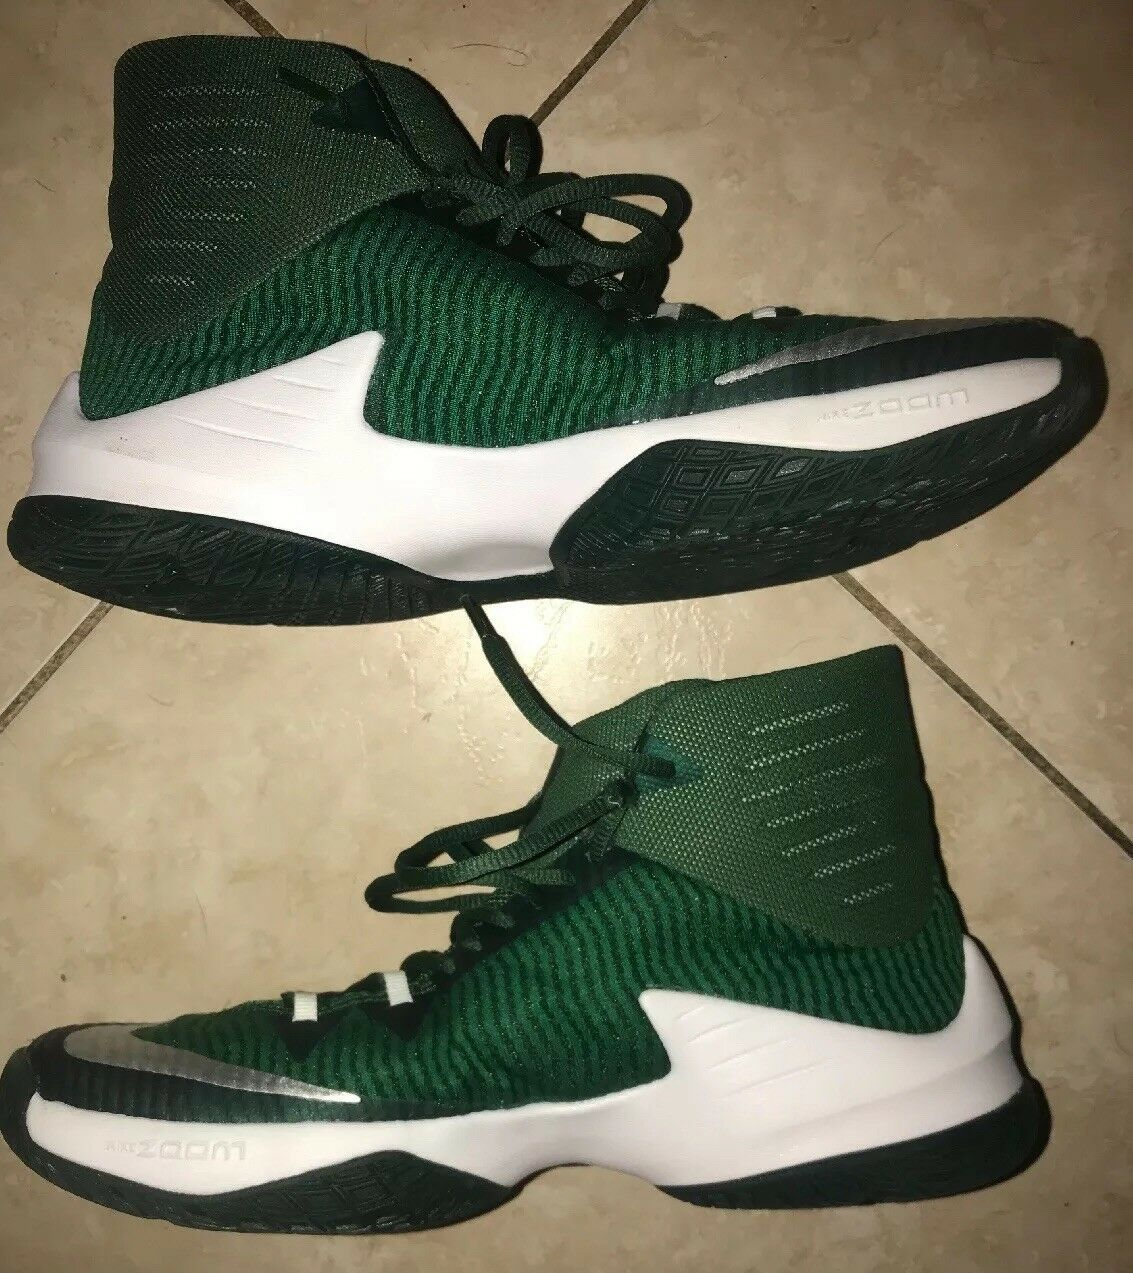 Nike Hyperdunk Sneakers Mens 2016 Basketball shoes Size 9.5 Green White Display